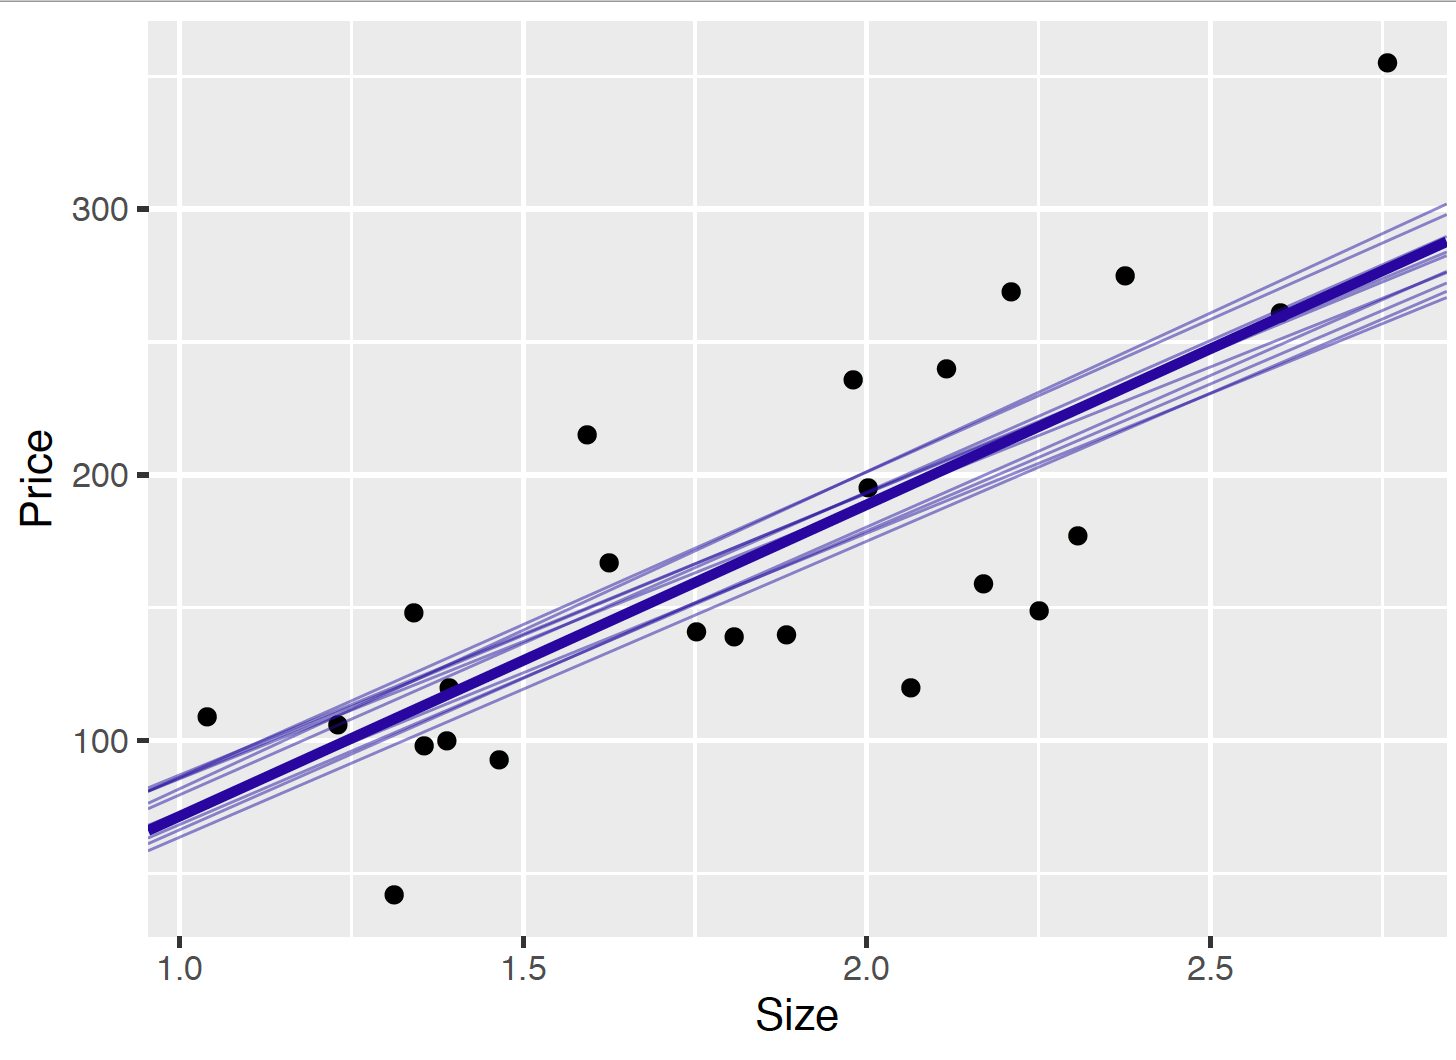 Scatterplot of the (size, price) data with the best line of fit (solid line) and ten simulated fits $b_0 + _1 x$ from the posterior distribution.